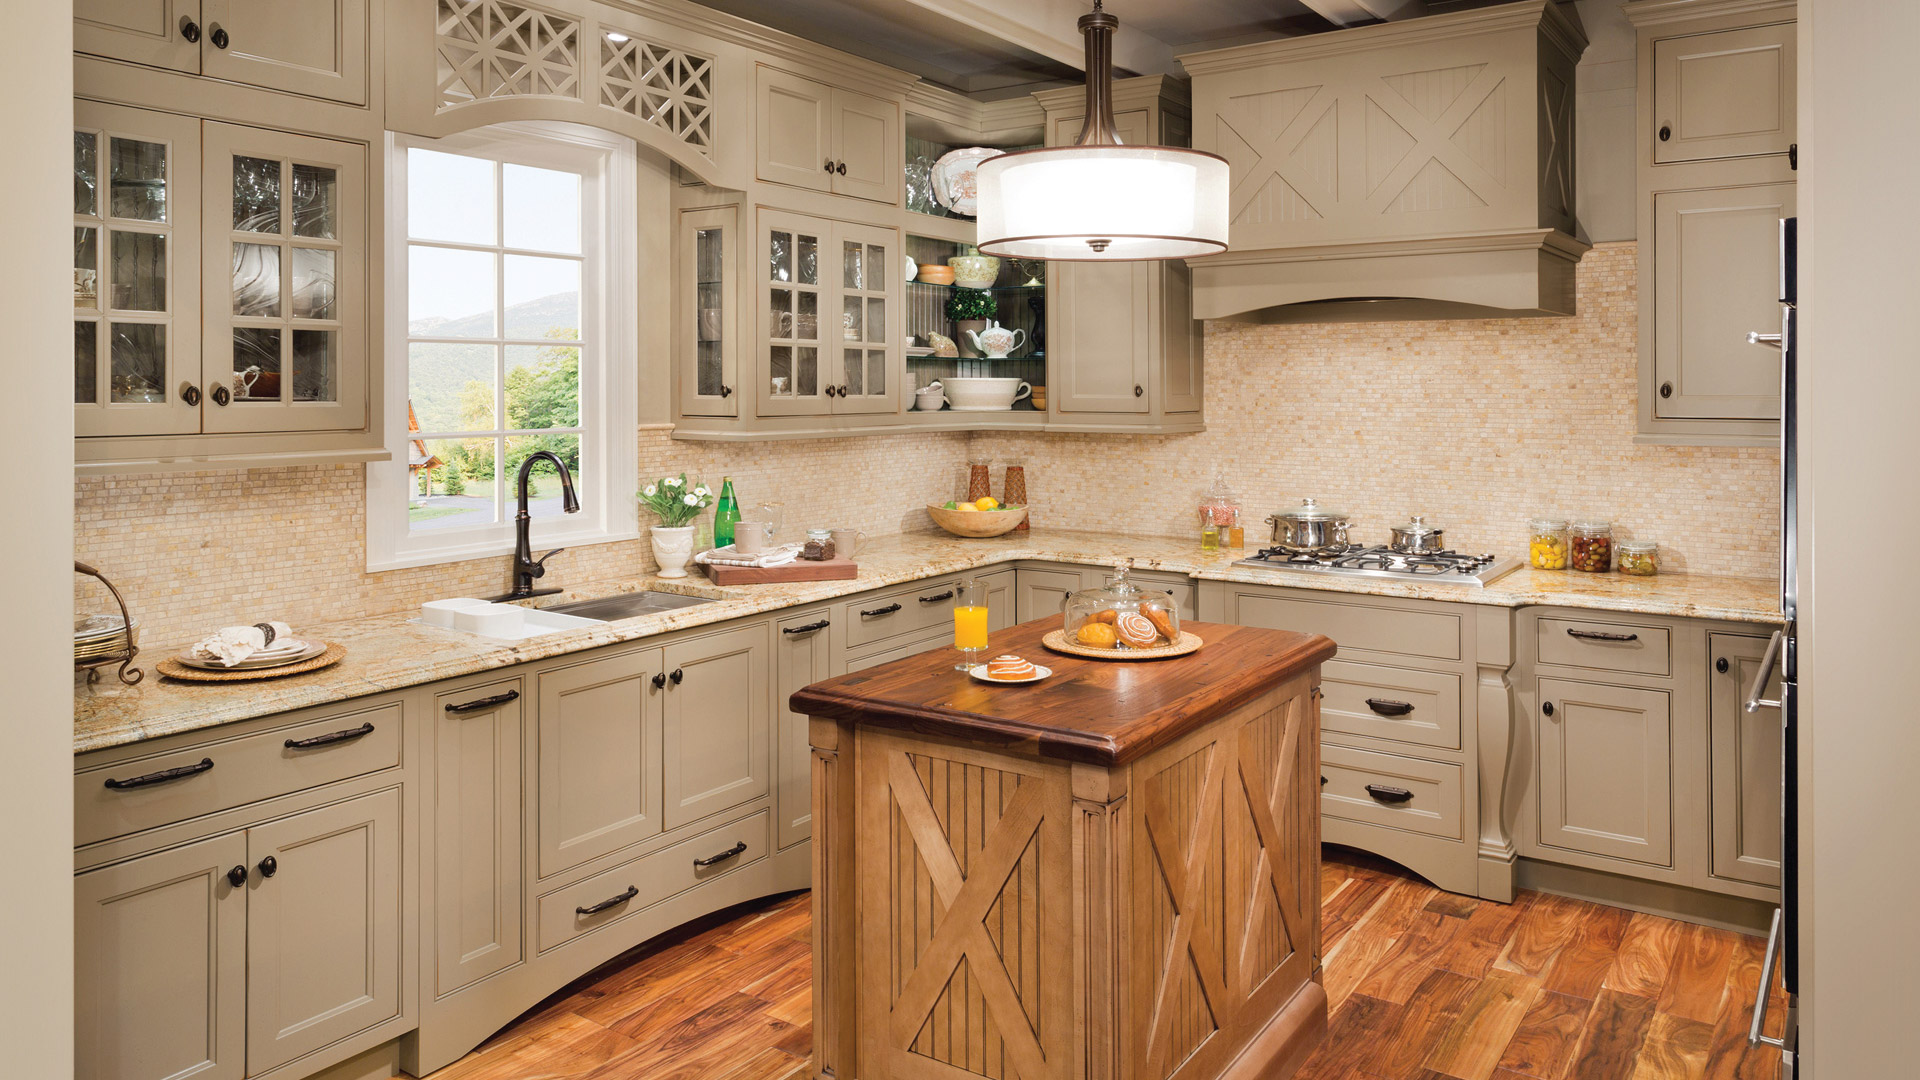 discount kitchen cabinets nj tv mount nextdaycabinets wholesale distributing for contractors